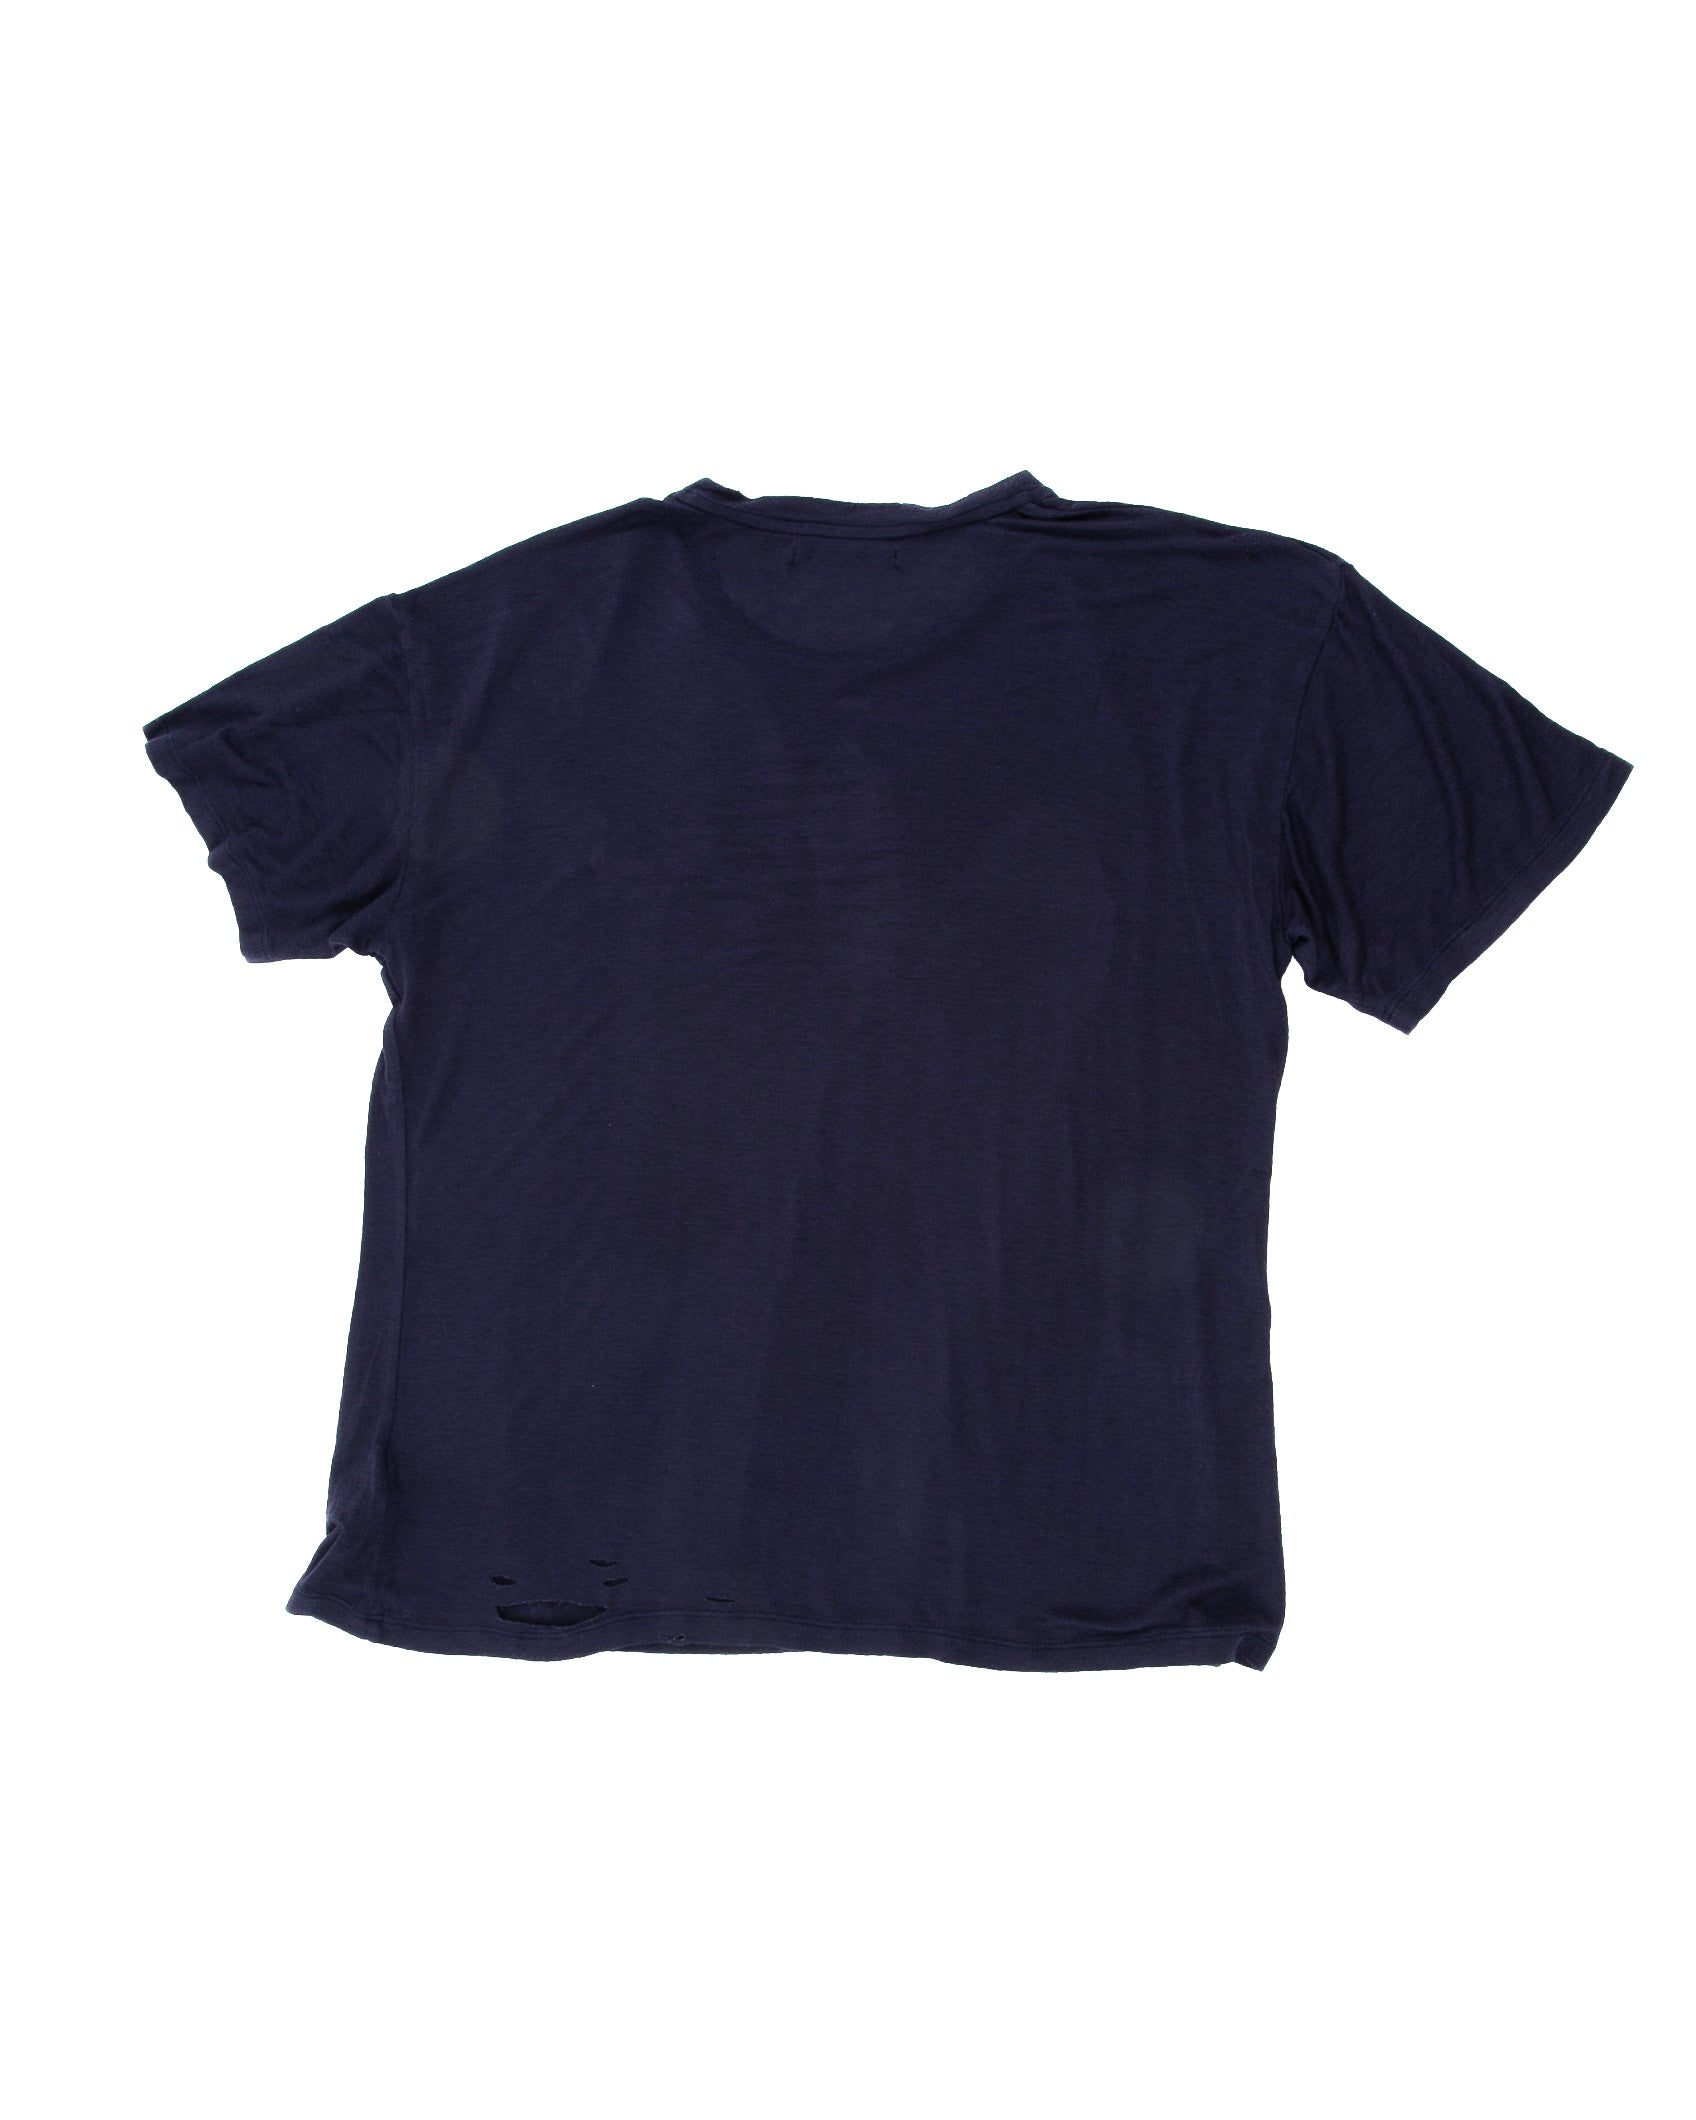 Back of Hand-stitched Tee in Navy